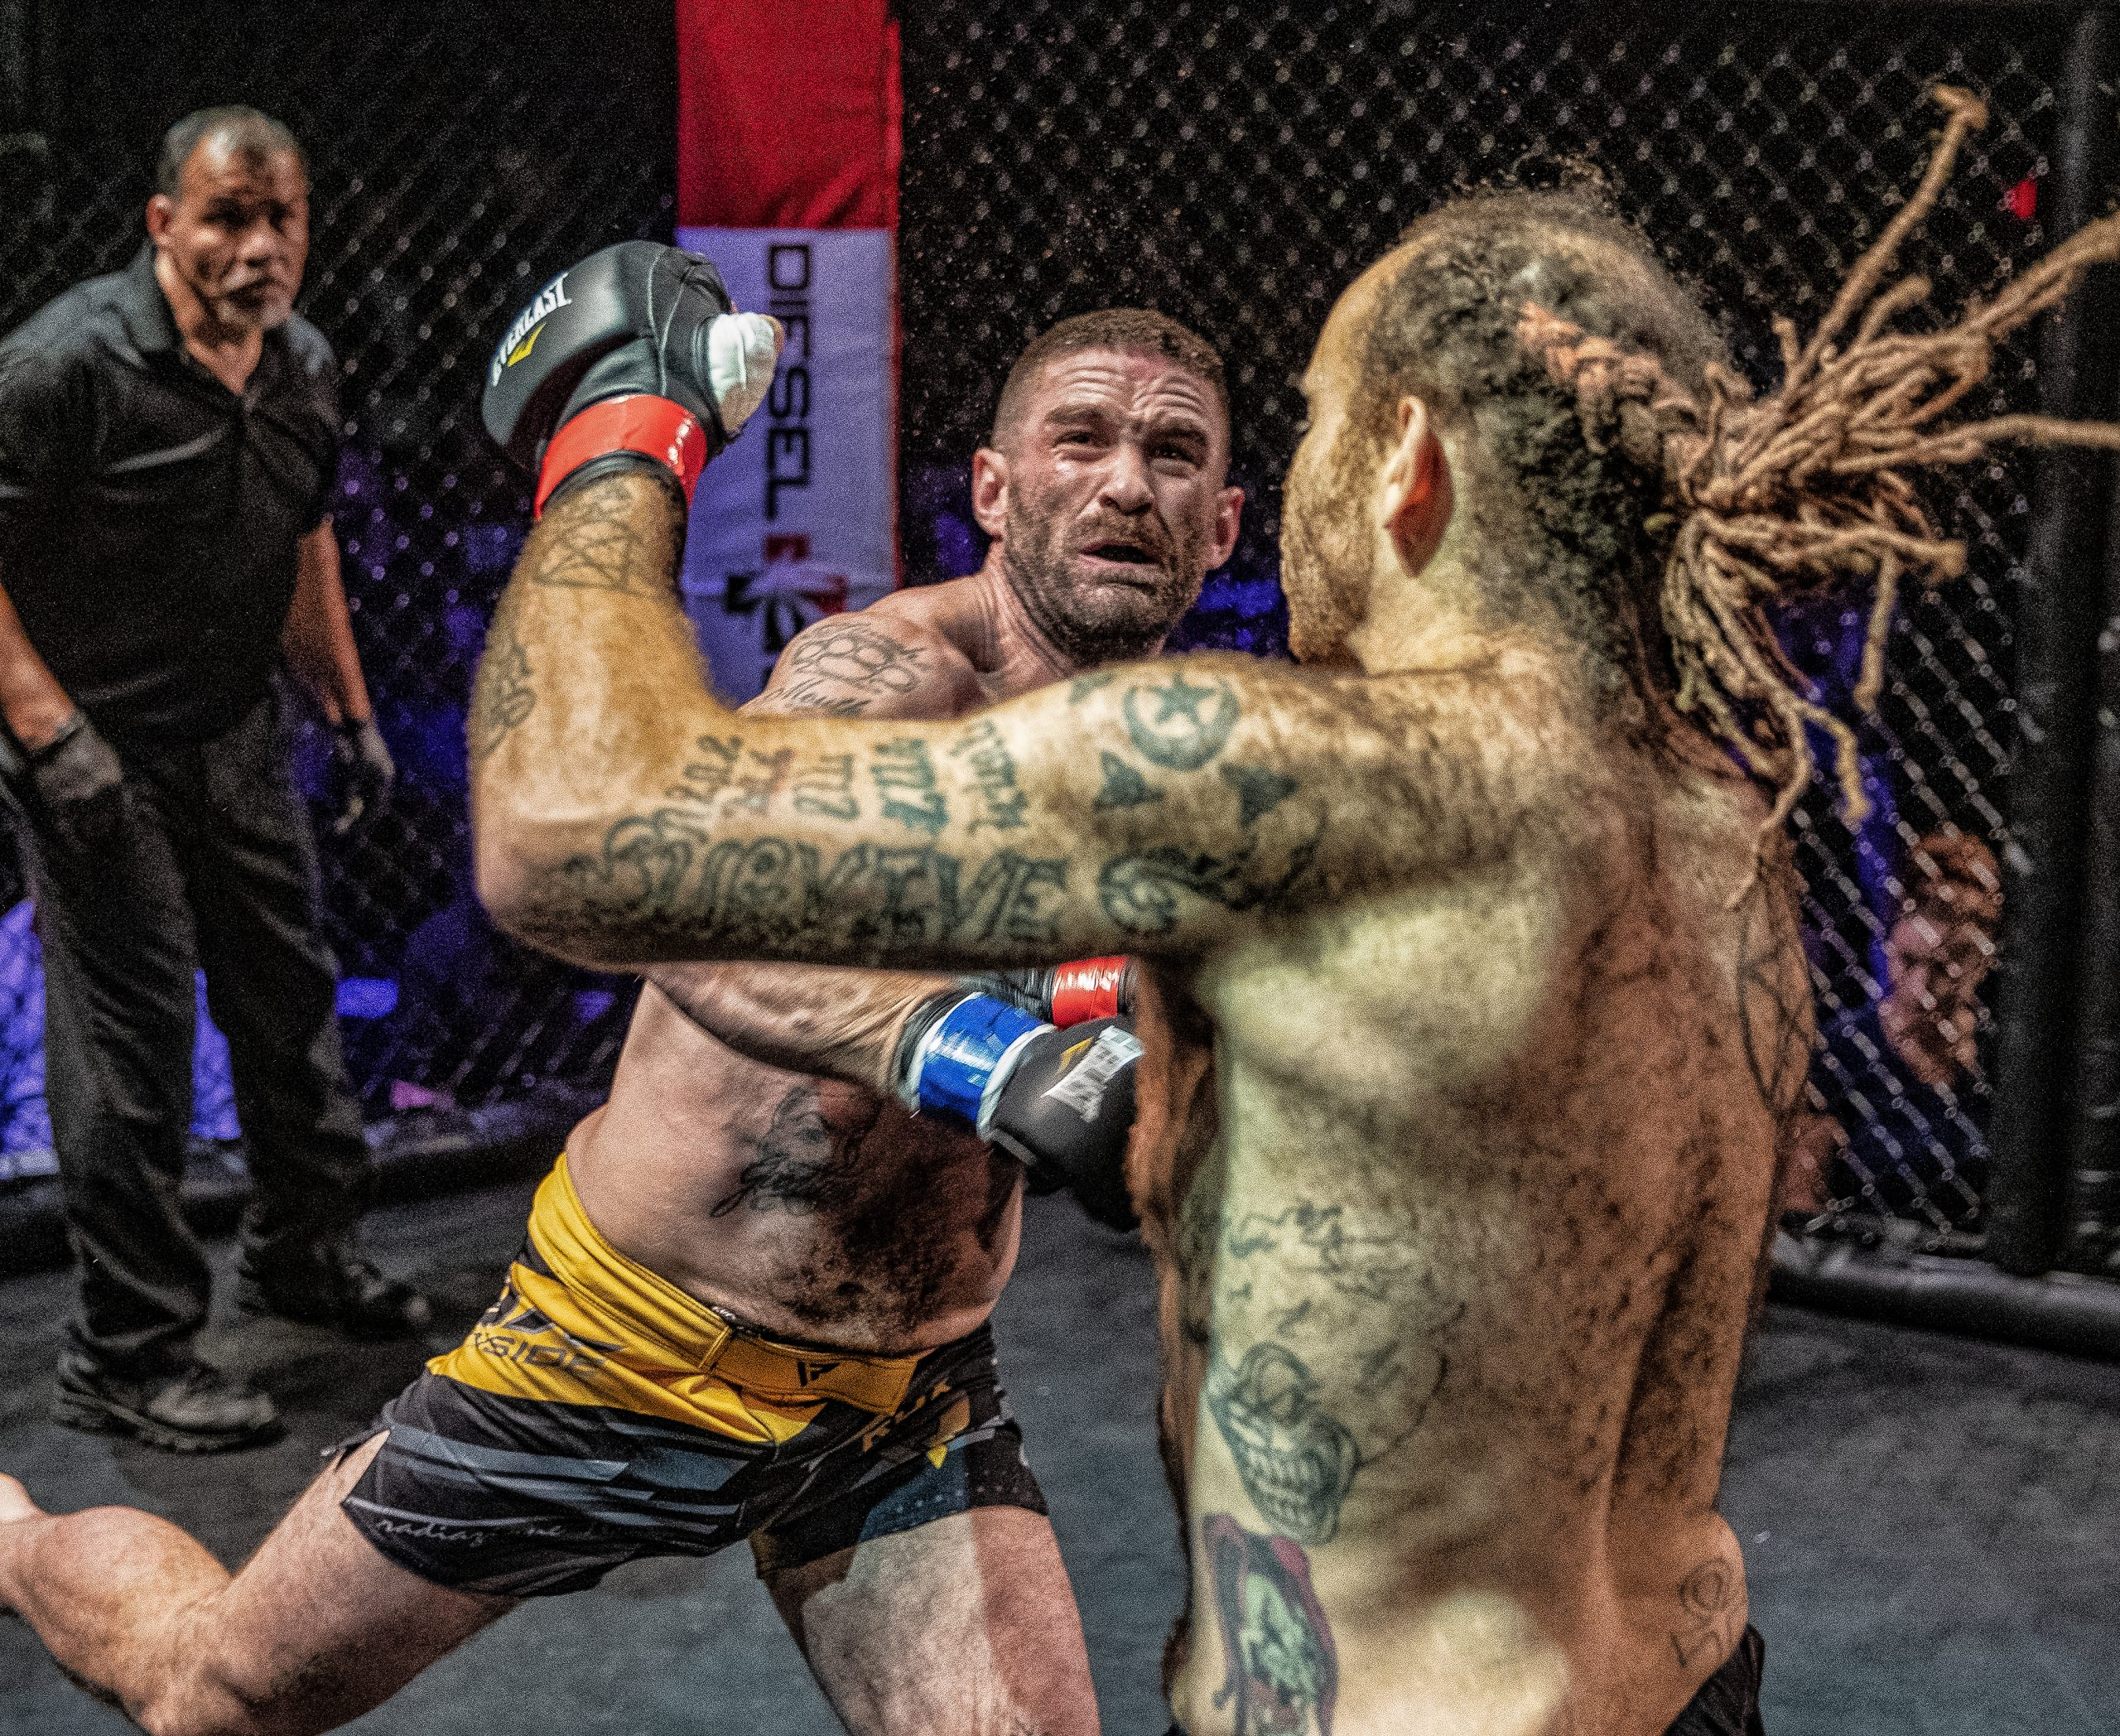 Ellsworths Sarro suffers first bare-knuckle fighting loss